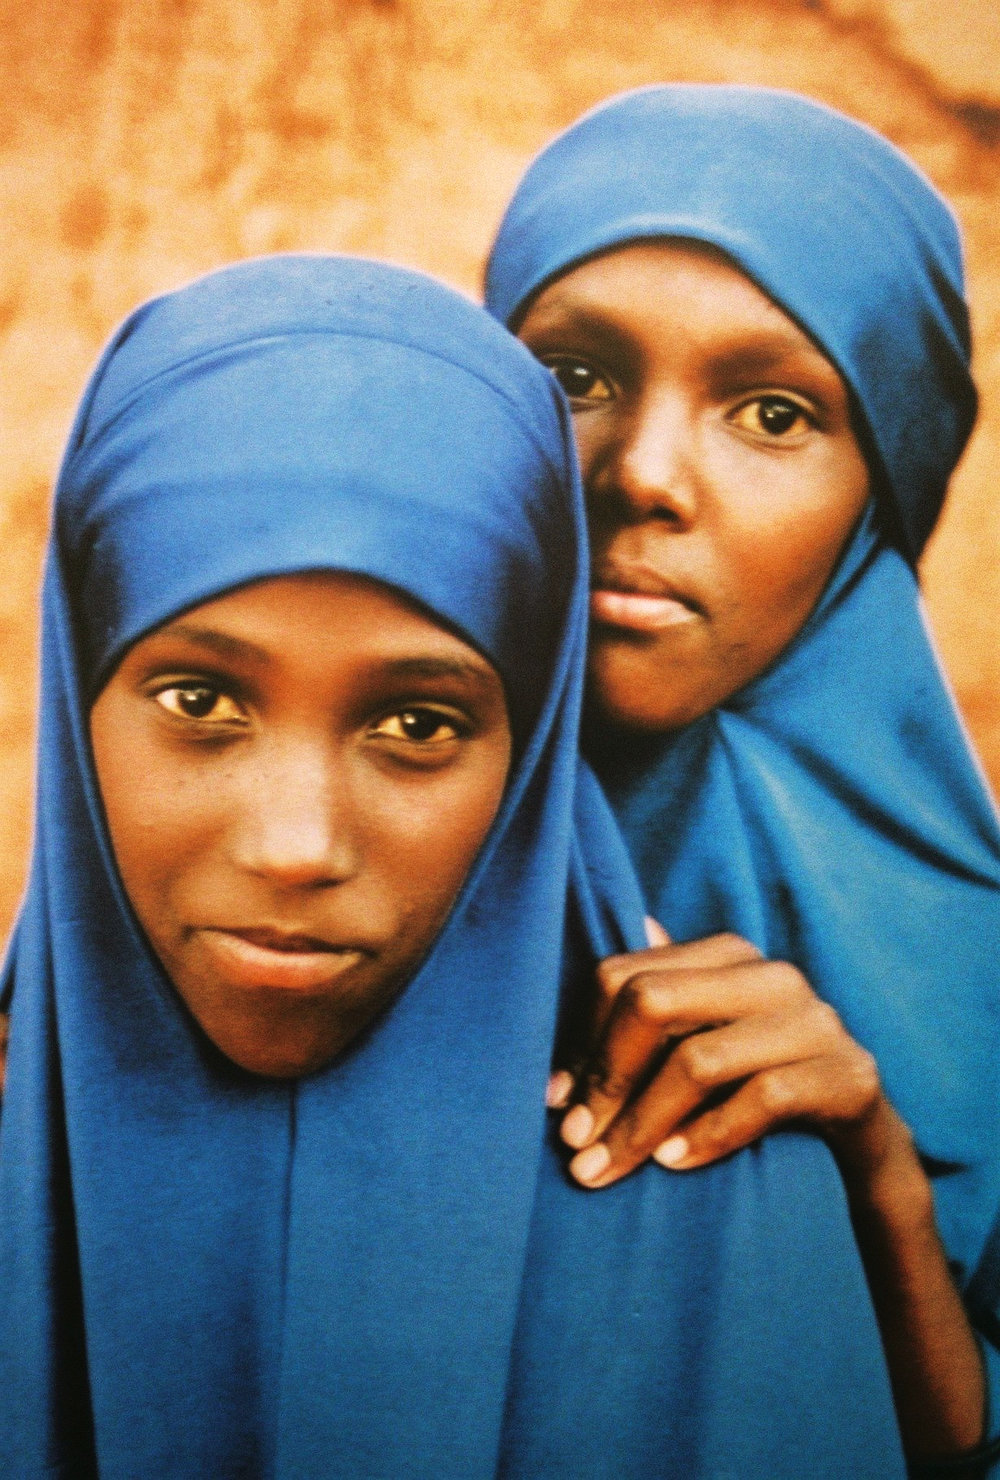 Alice Aedy, Burao, Somaliland (detail)| Photography by Delilah Olson -